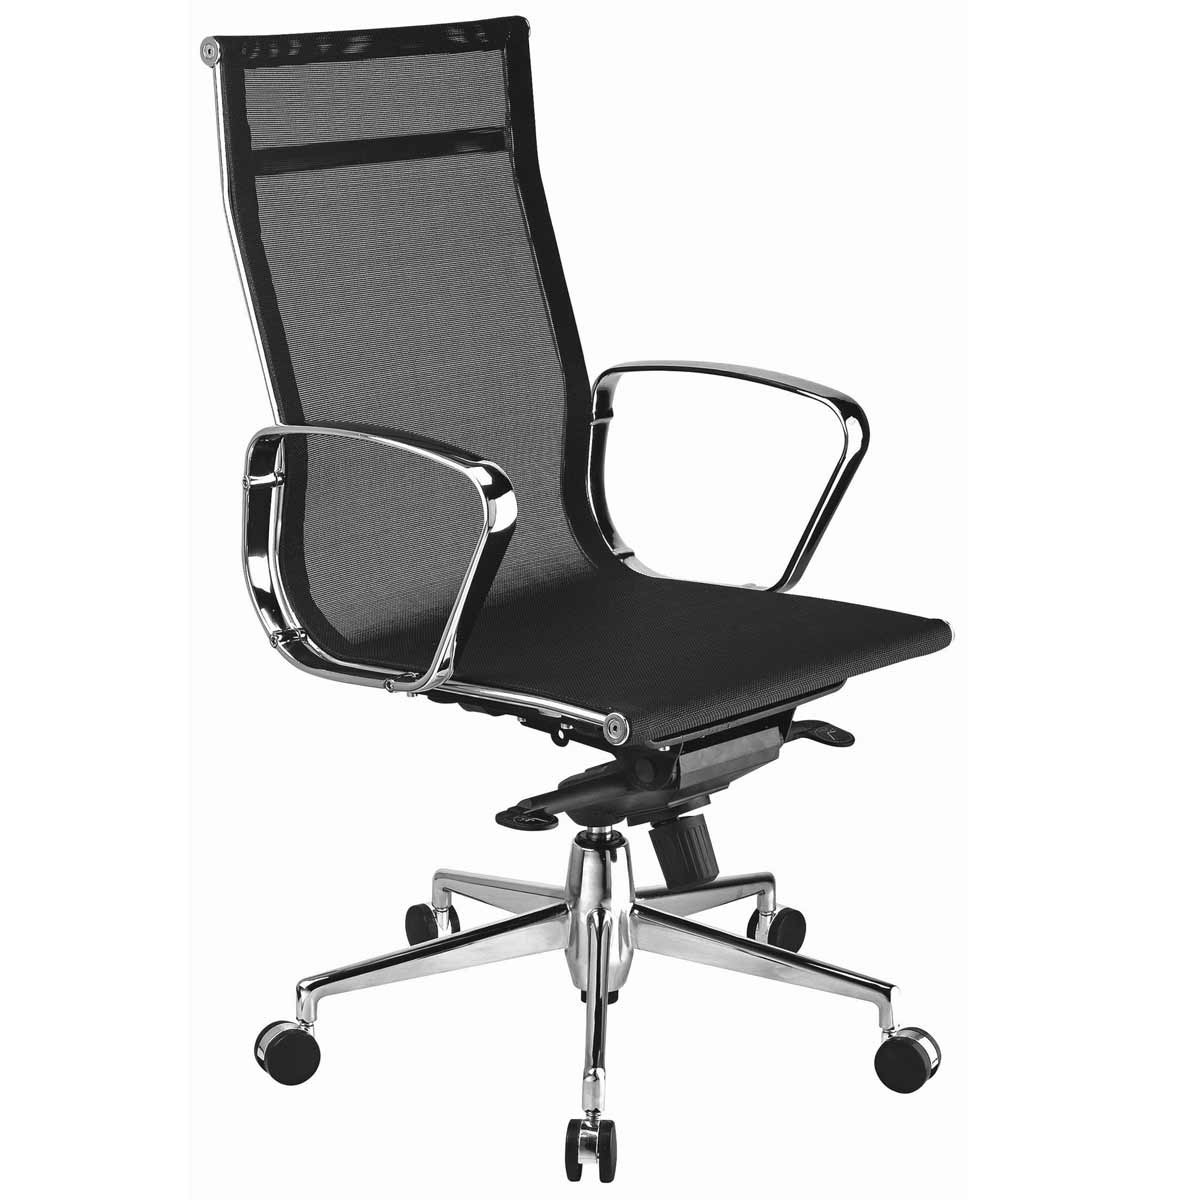 stylish metal office mesh swivel chair